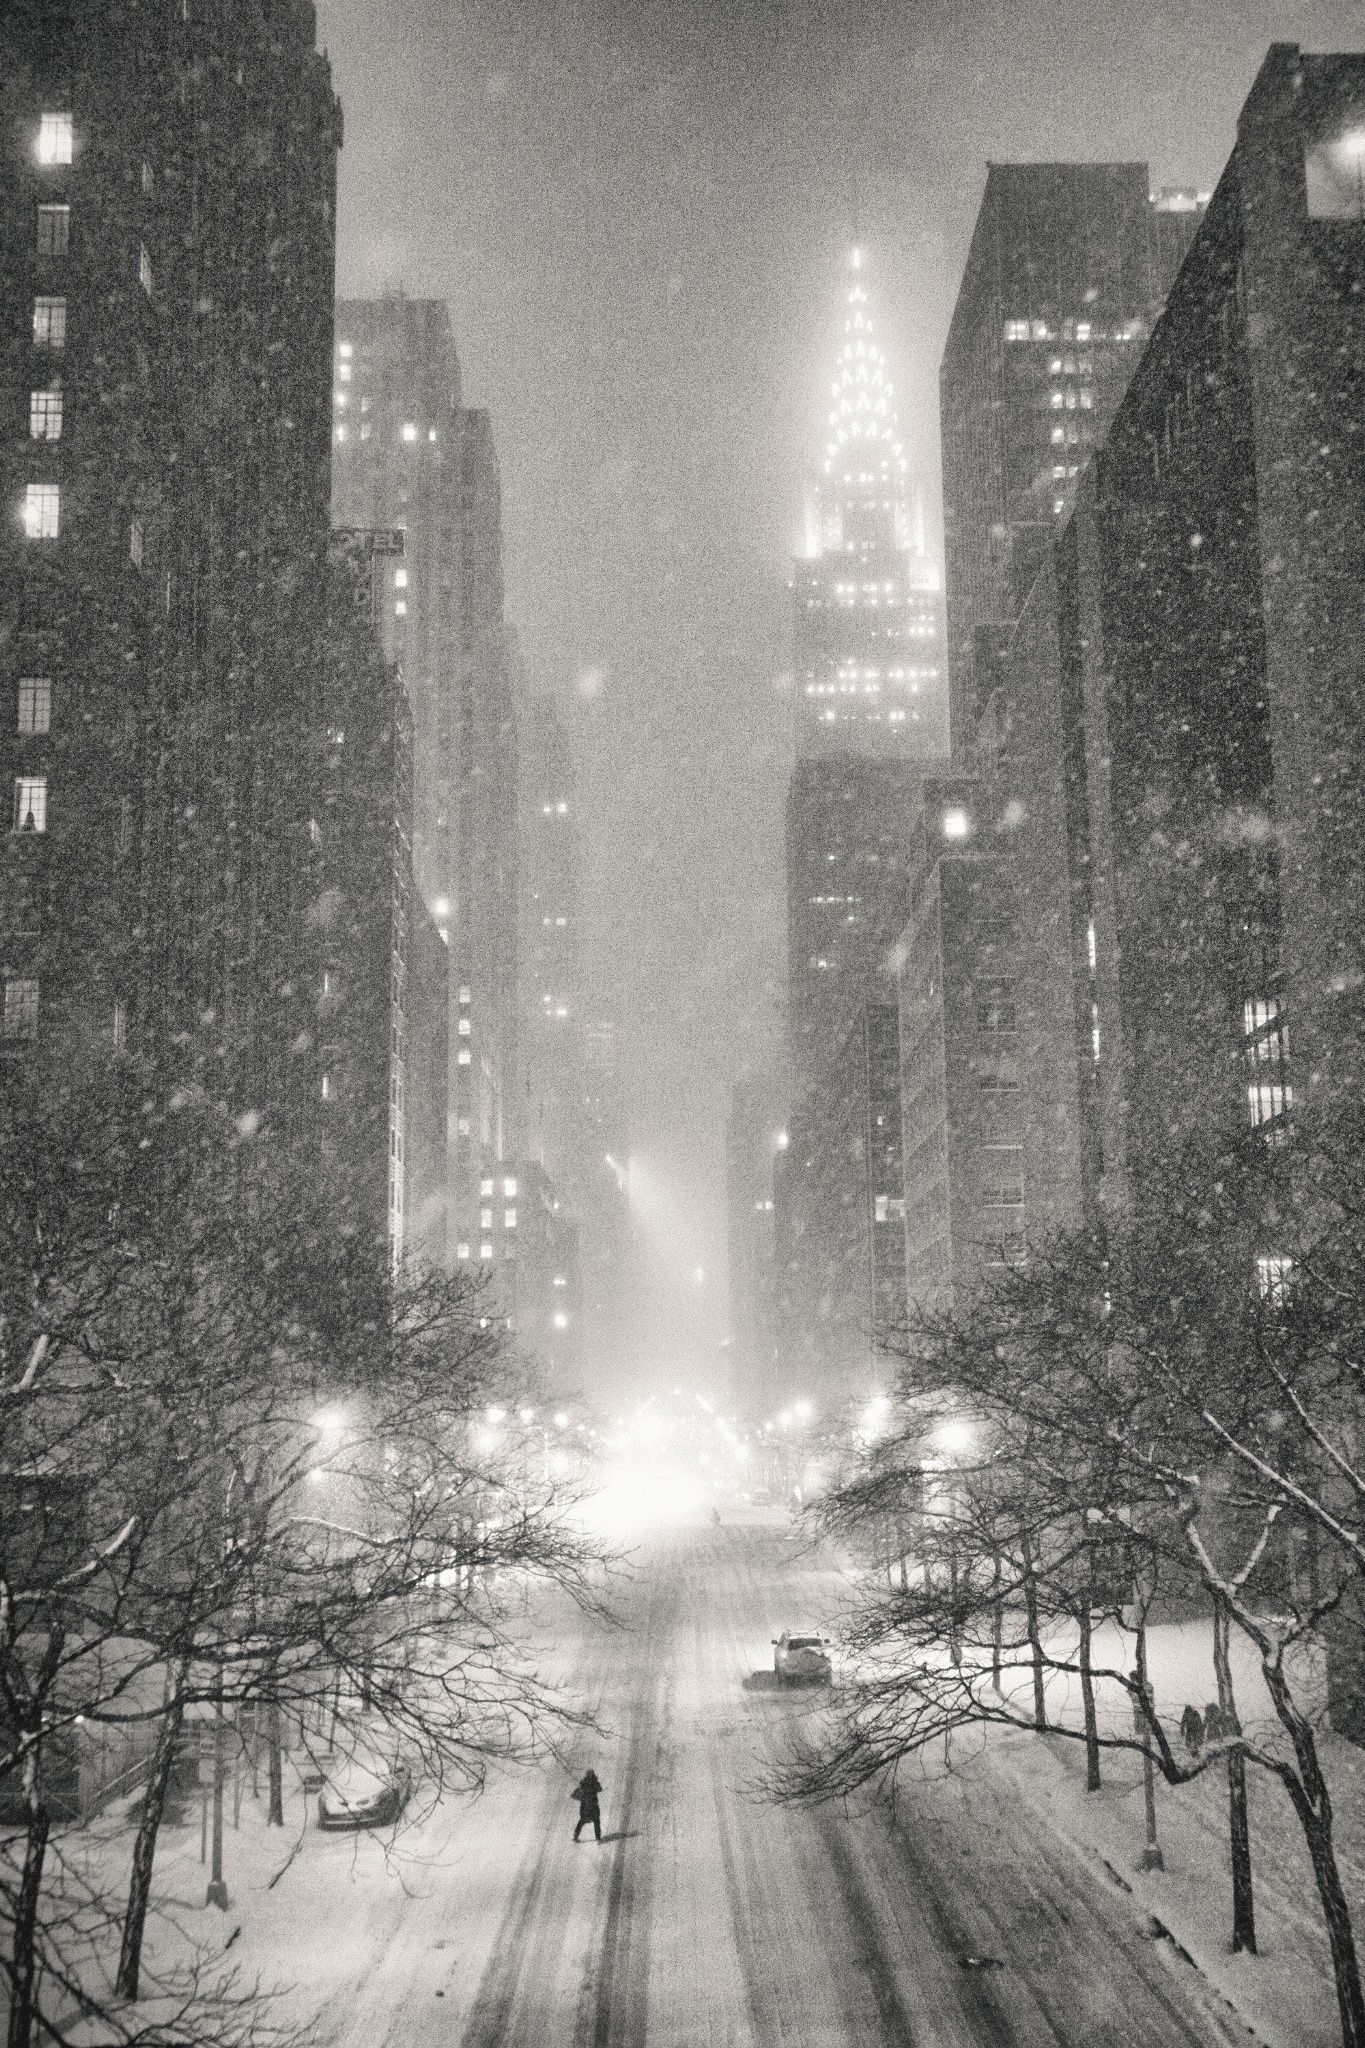 New York City On A Winter Night In The Snow Overlooking The